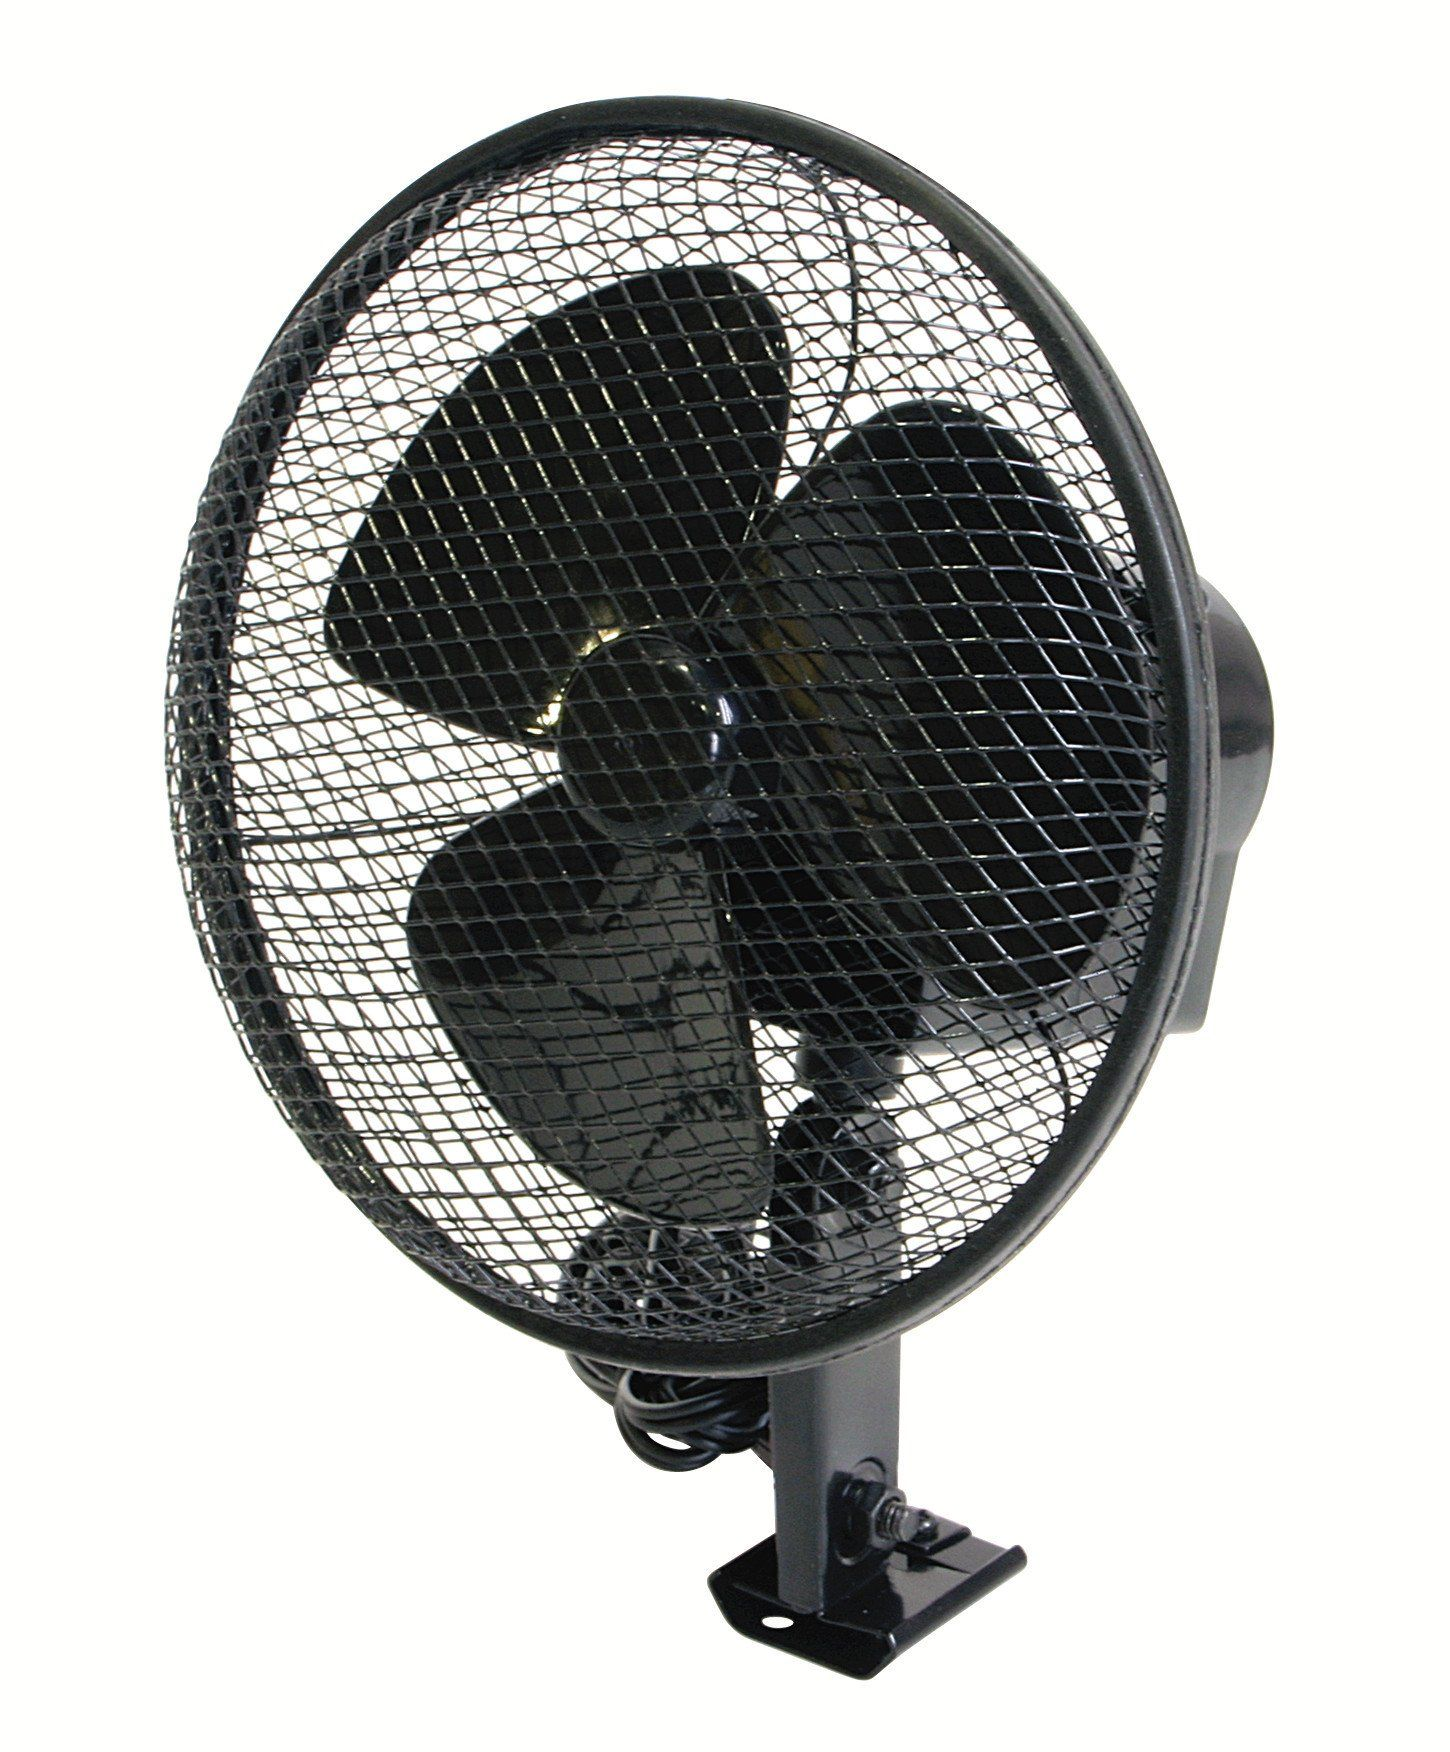 Lampa 73101 Ventilatore Jumbo In 2020 Floor Fan Fan Table Fan